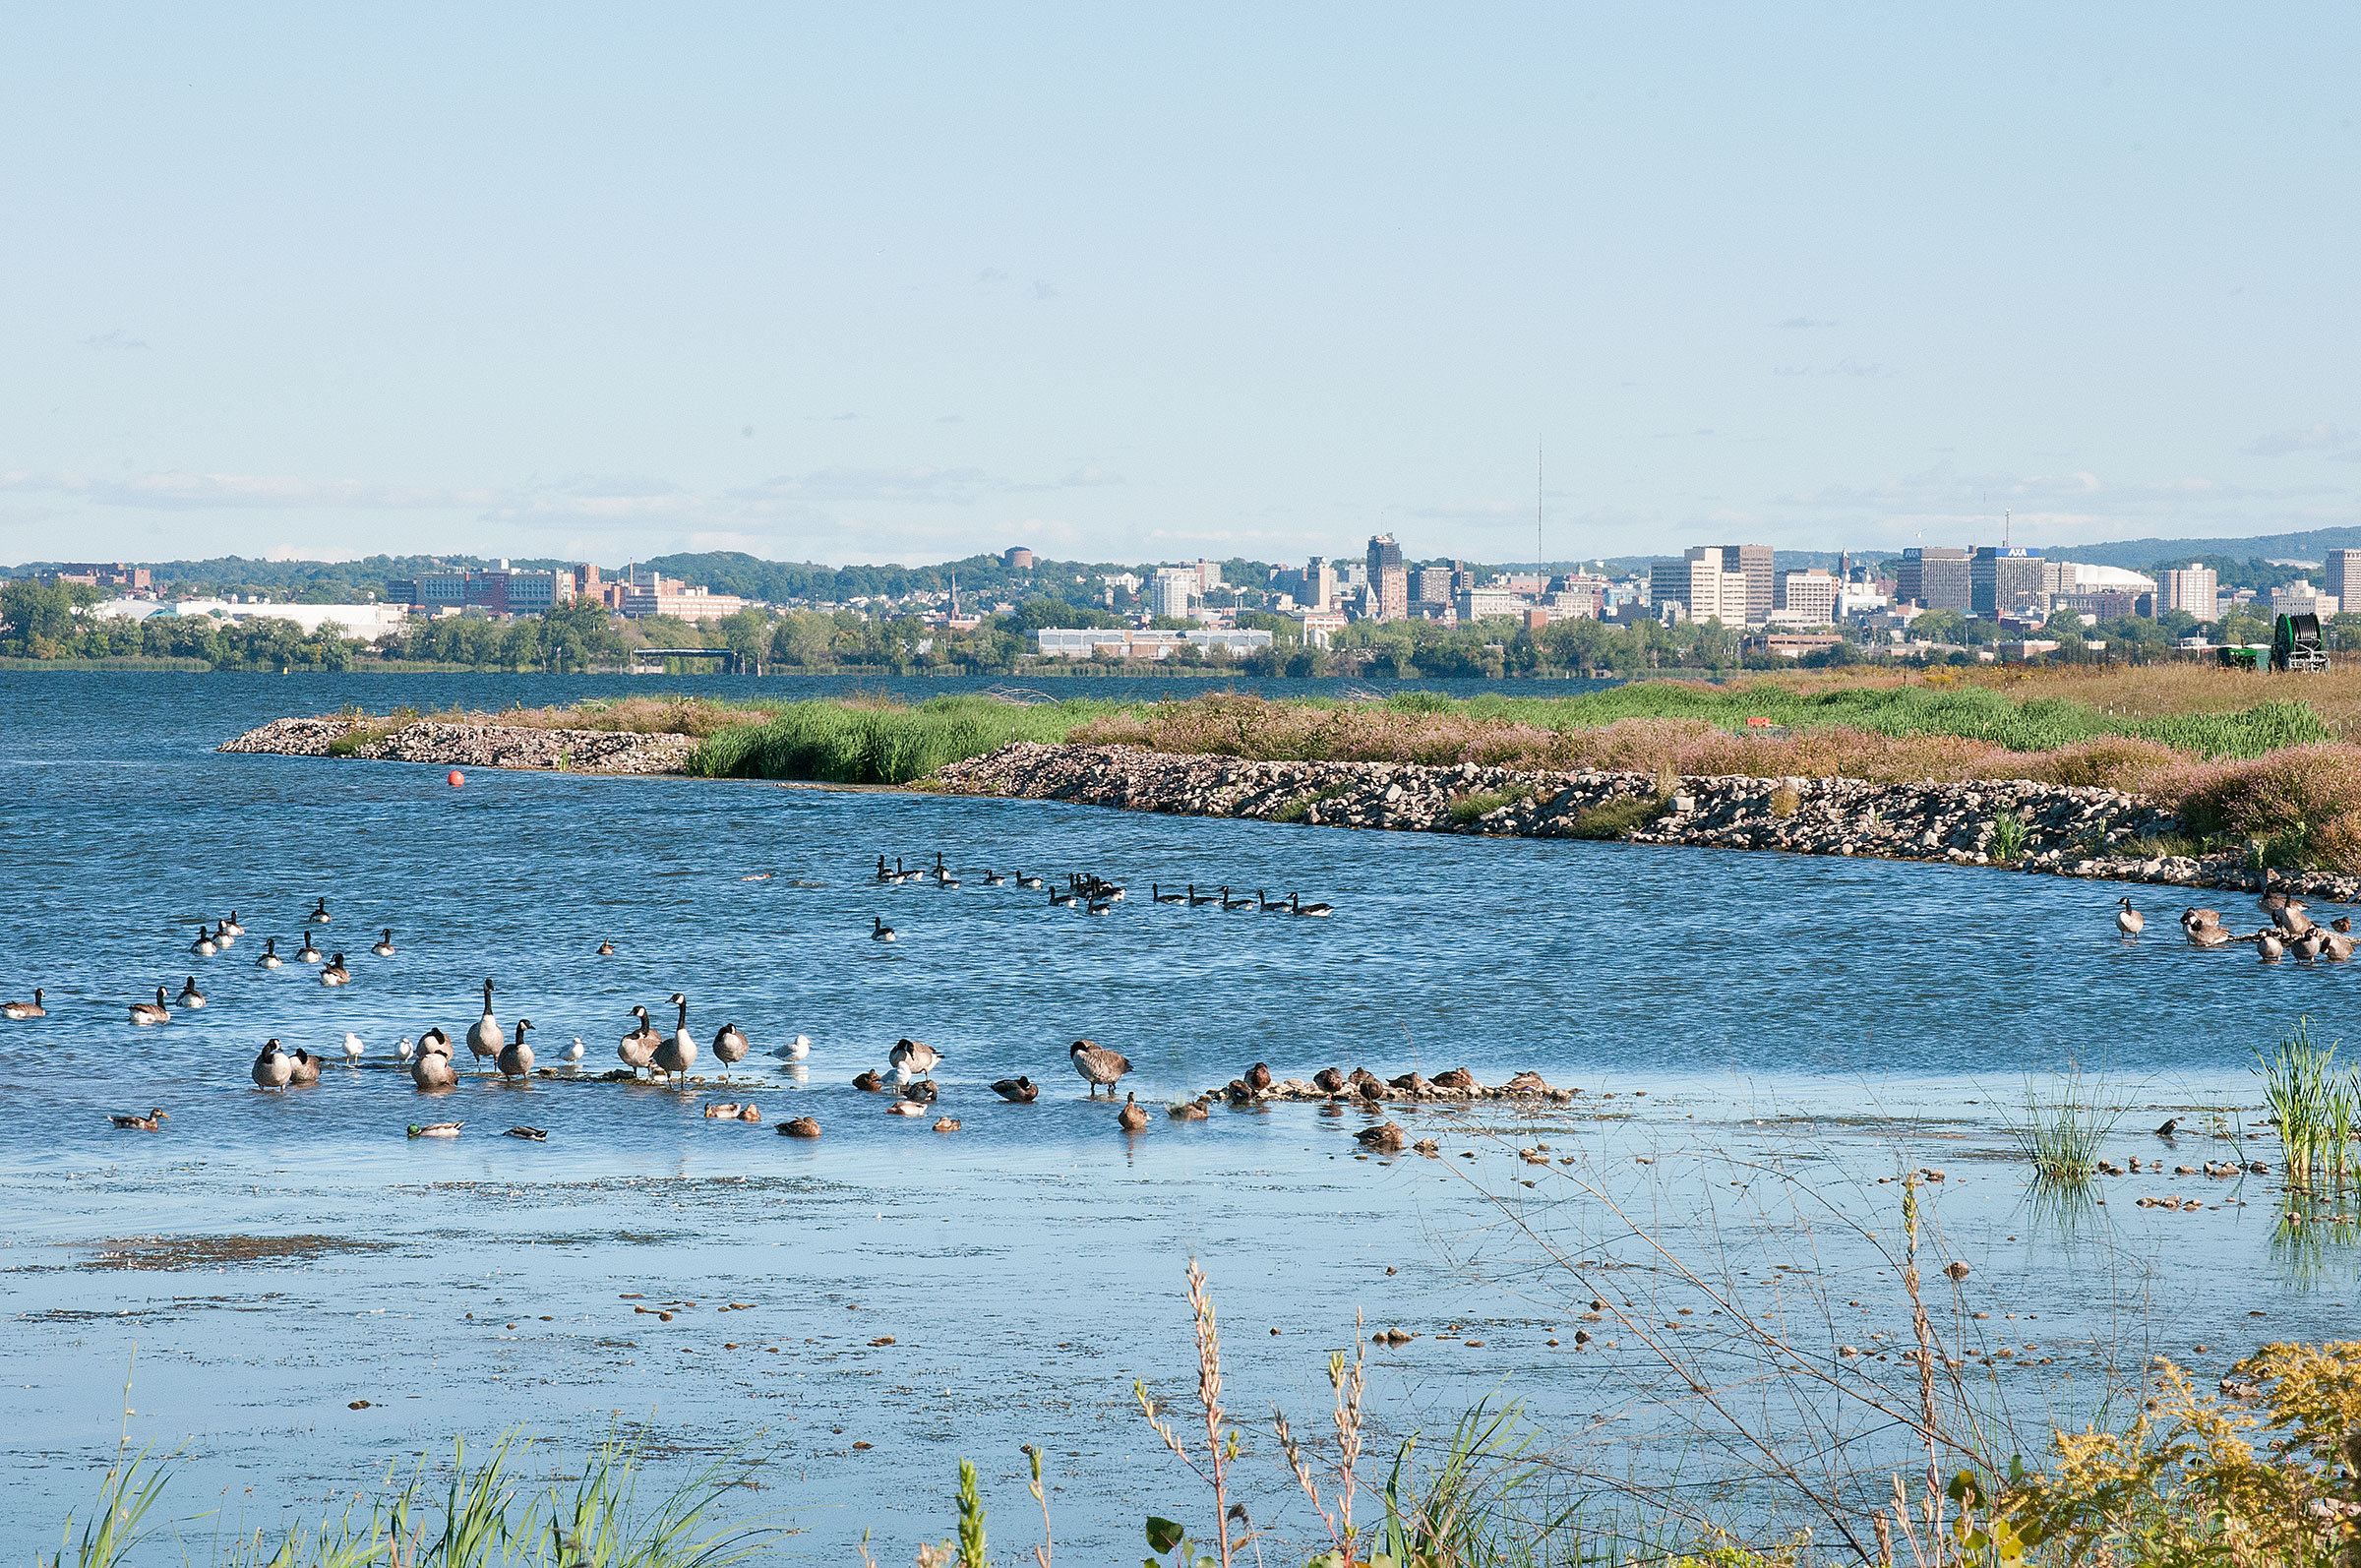 Replanting historical marsh and cattails has resulted in an influx of bird species at the once-abandoned Superfund site. Michele Neligan